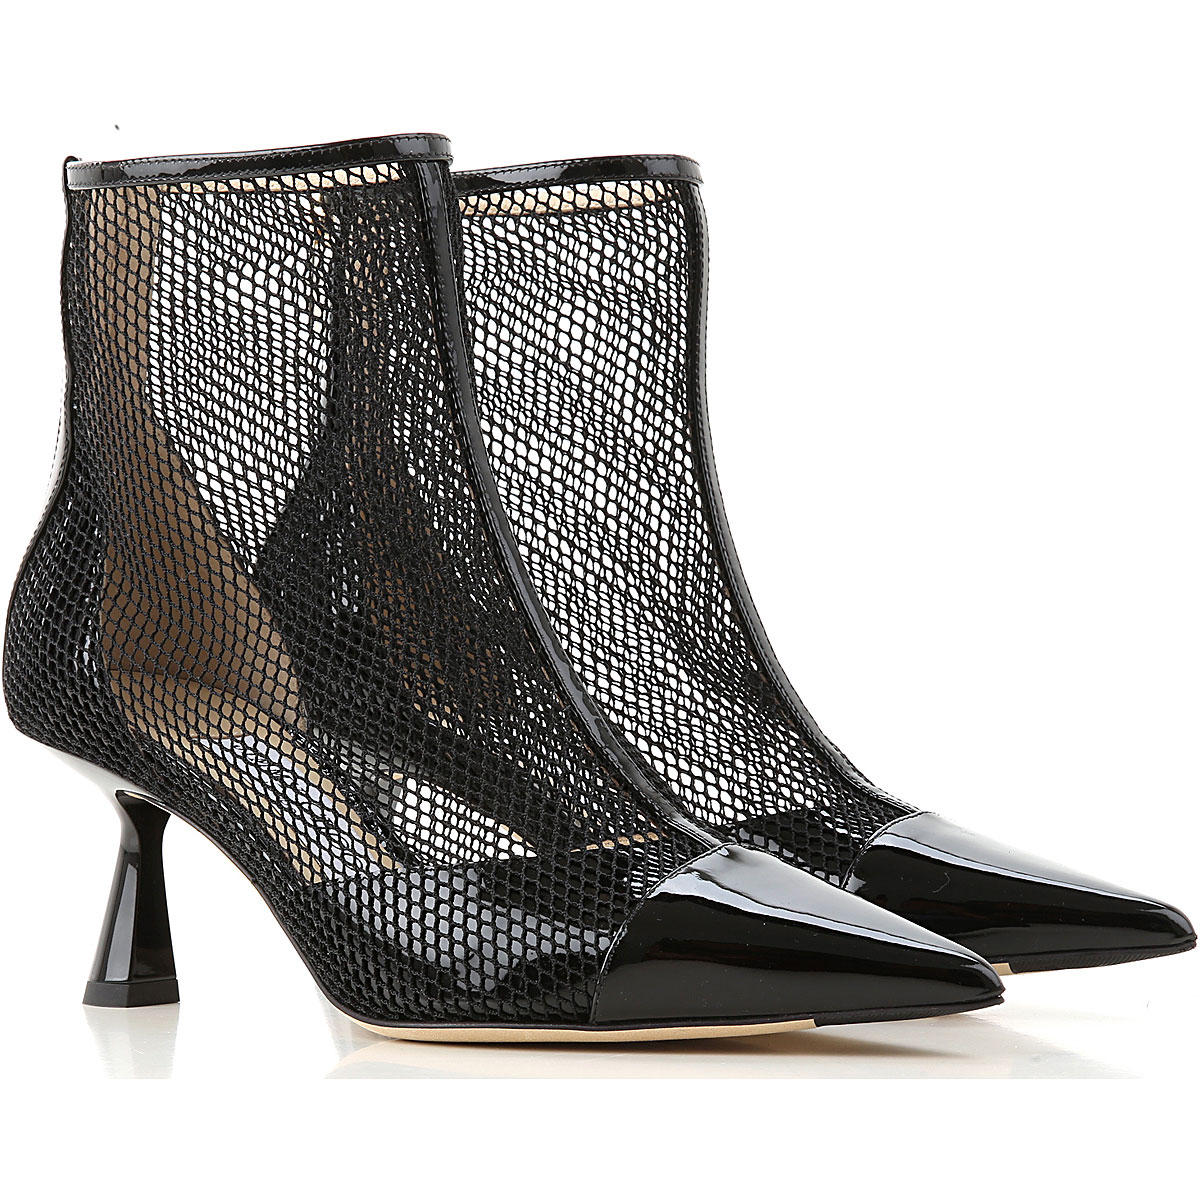 Jimmy Choo Boots for Women, Booties On Sale, Black, Leather, 2019, 6 8